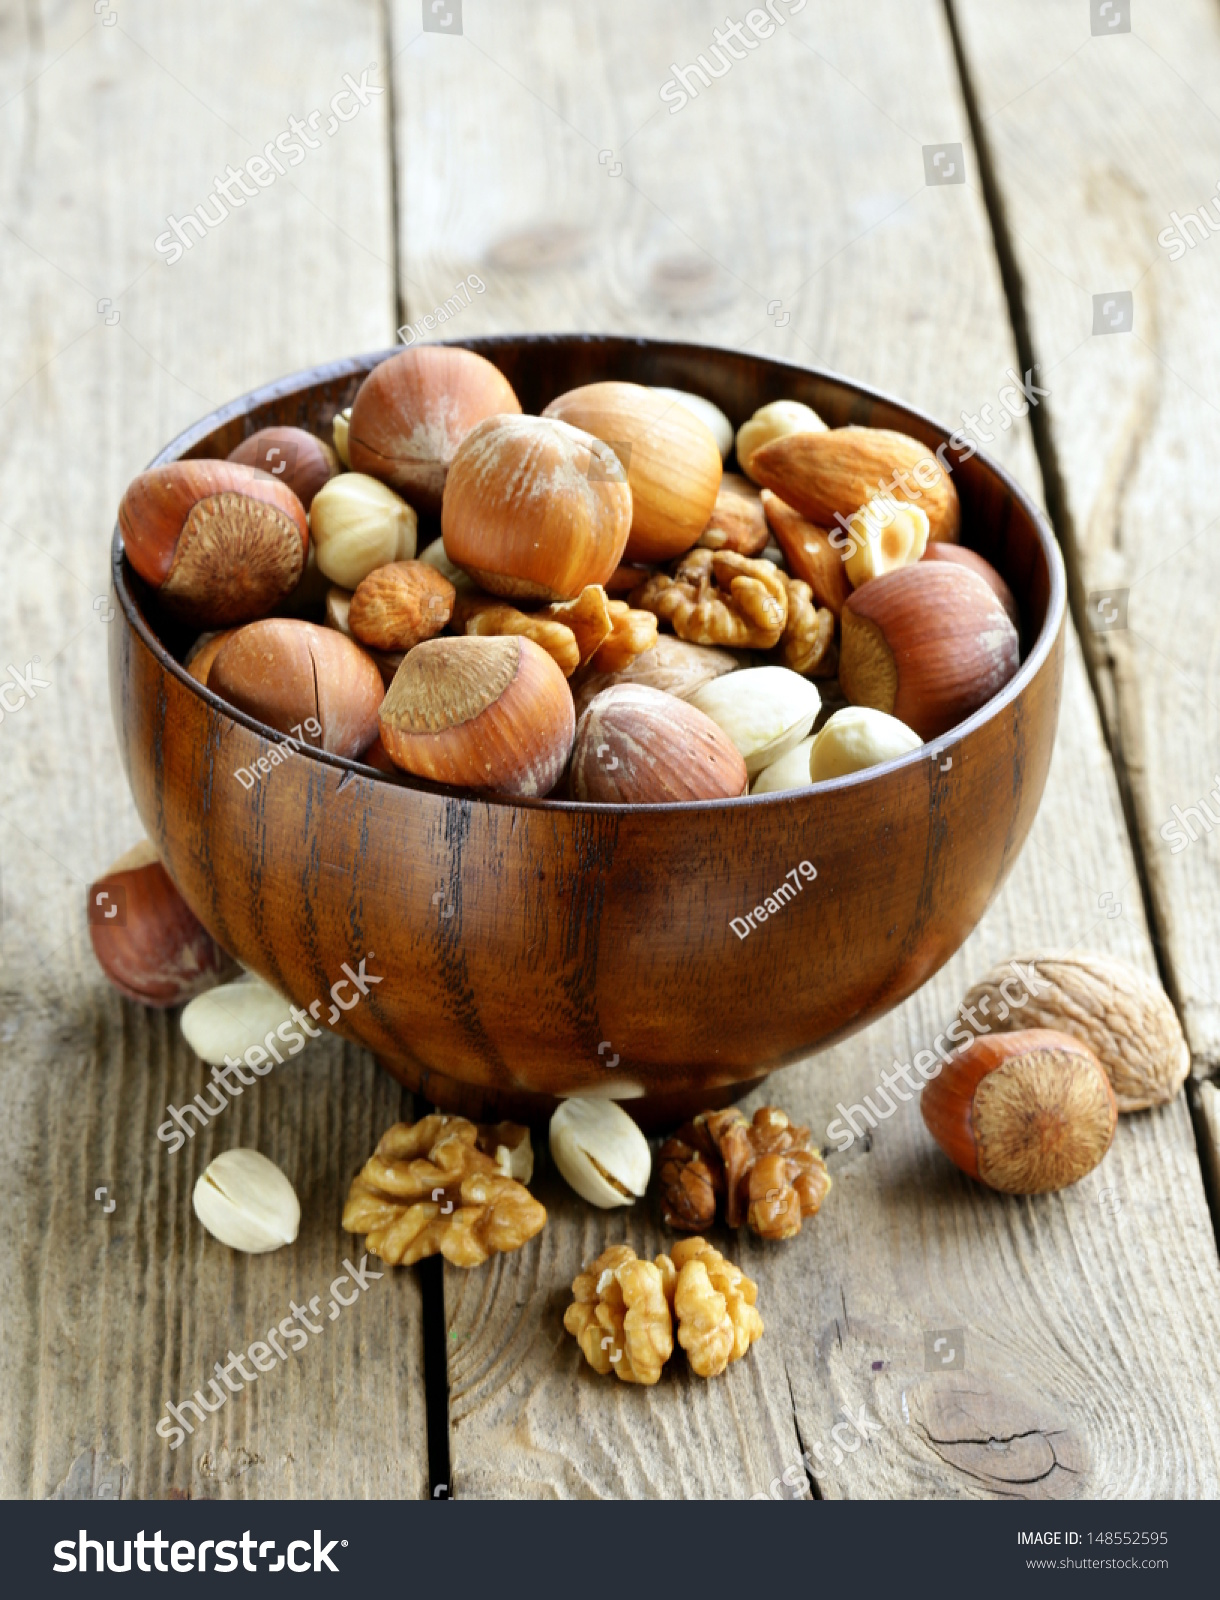 Whole walnuts on rustic old wooden table - with copyspace photo